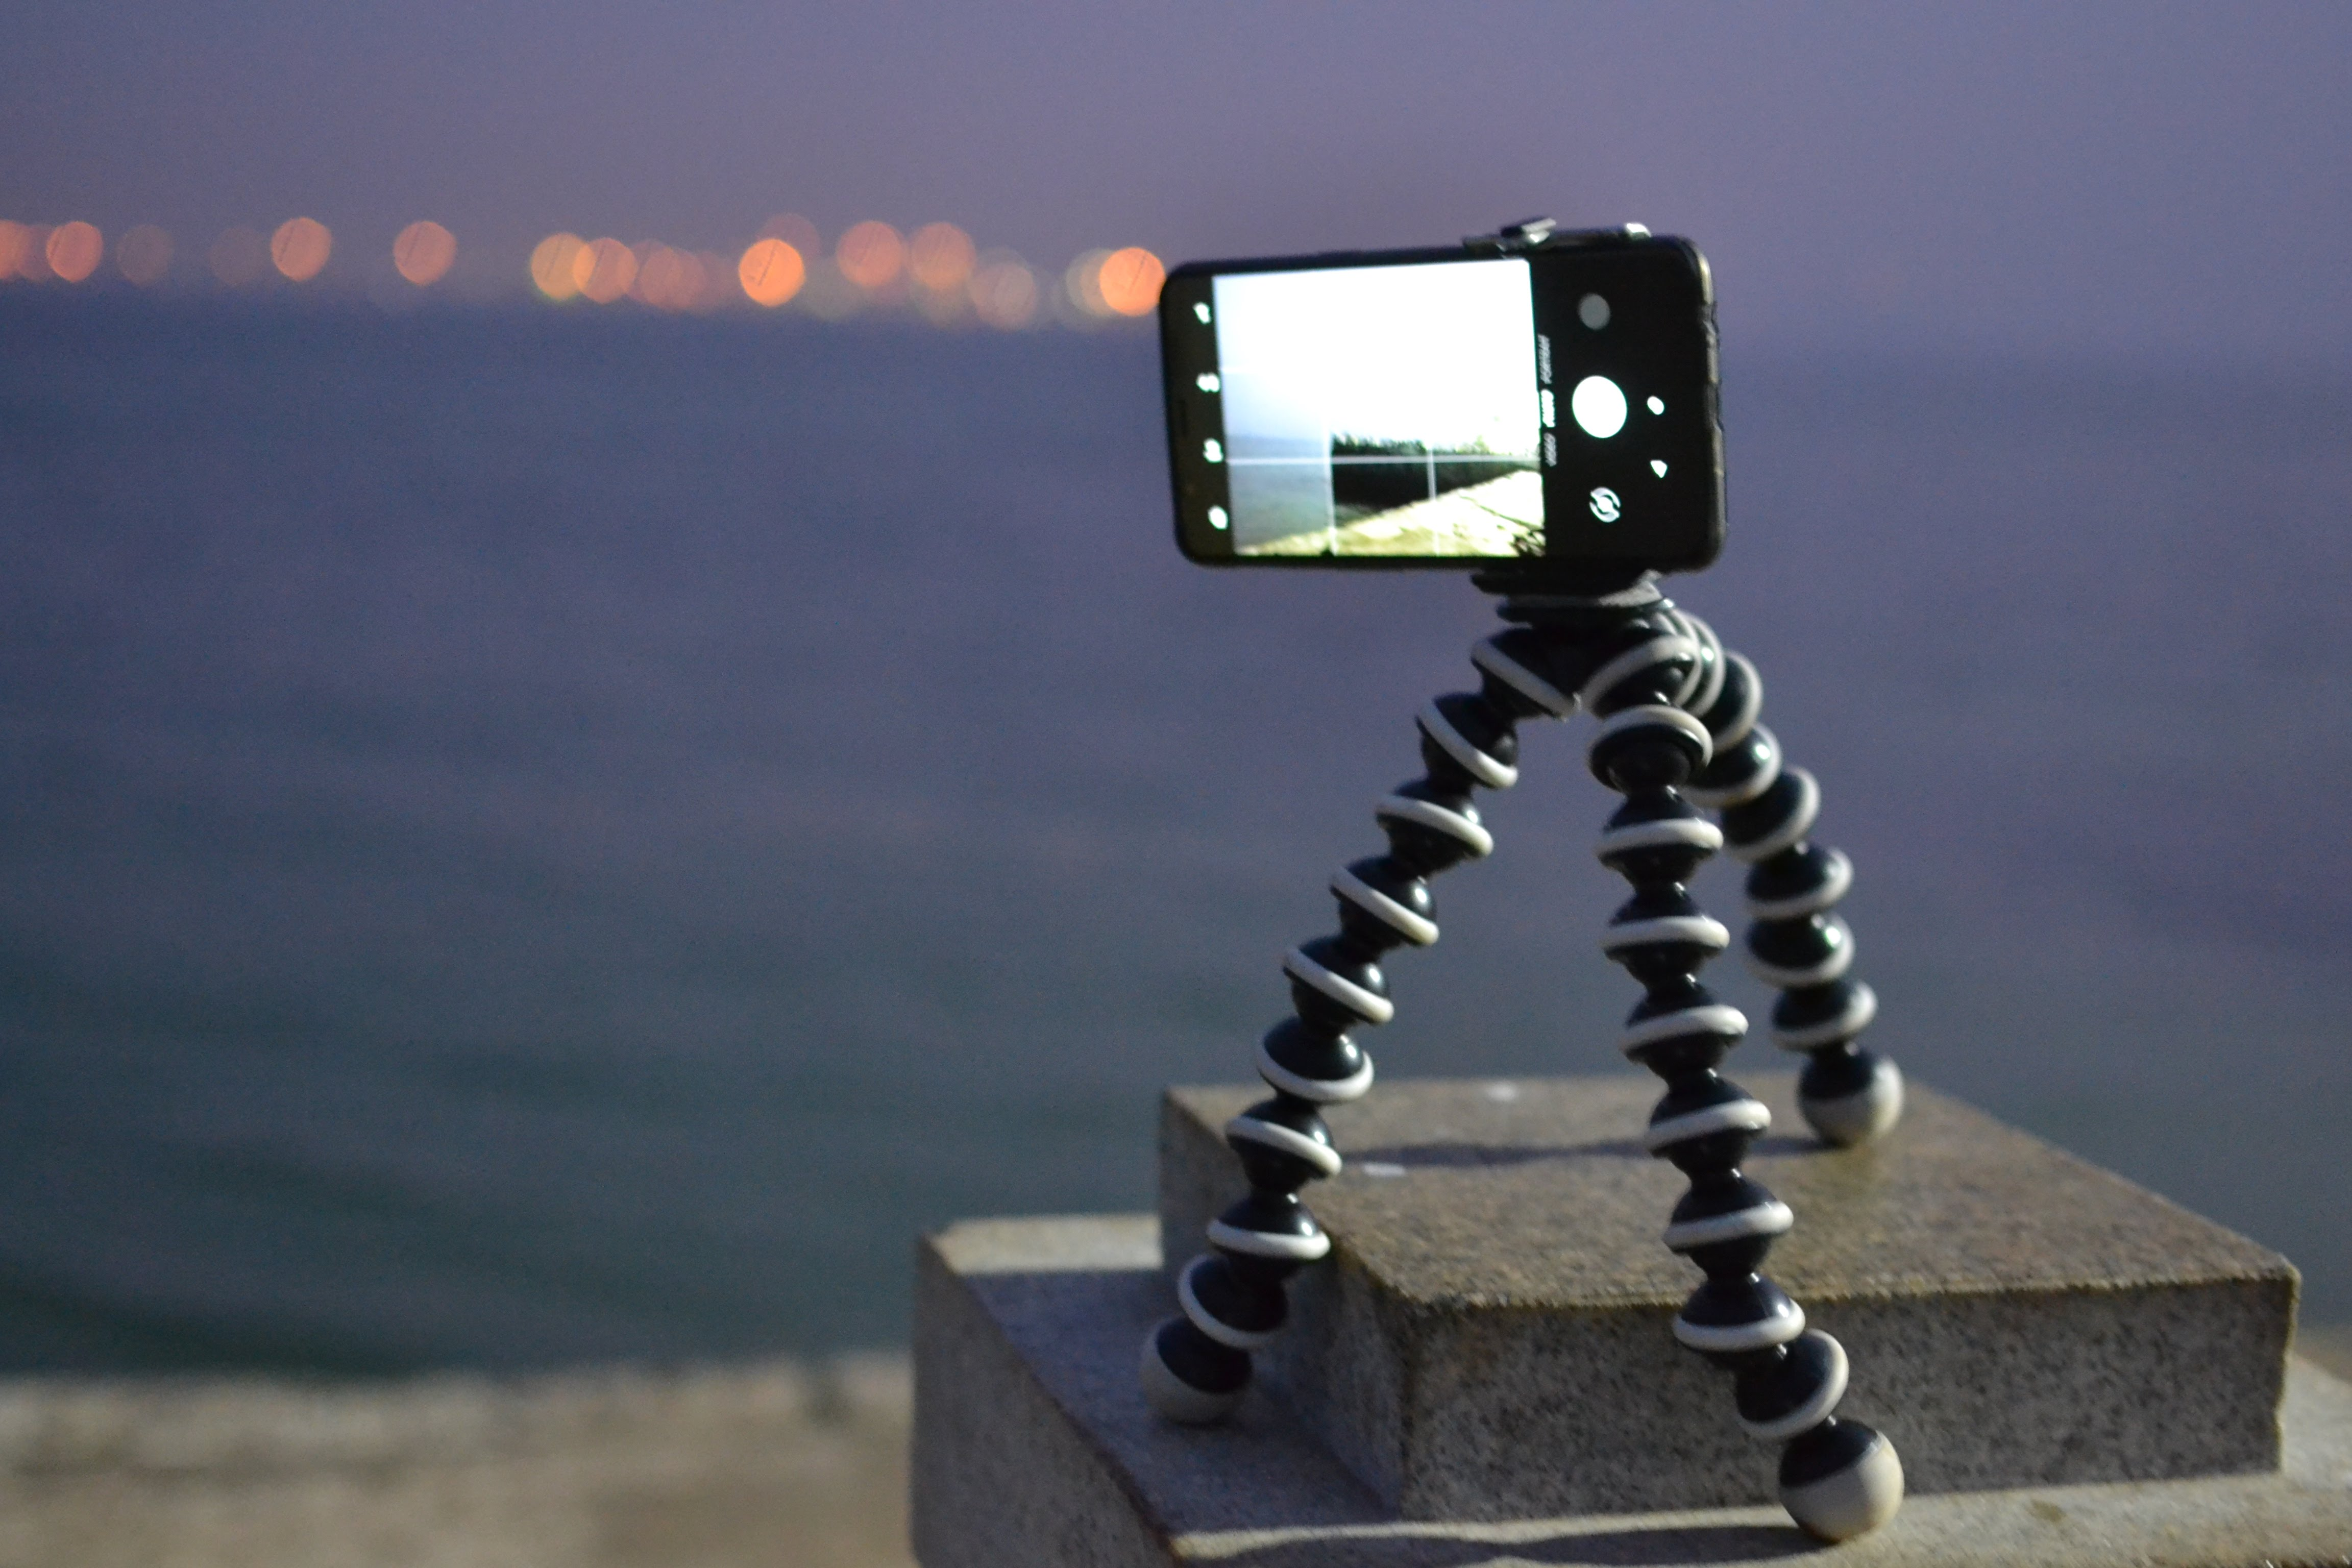 Gorilla Pod and Mobile Camera